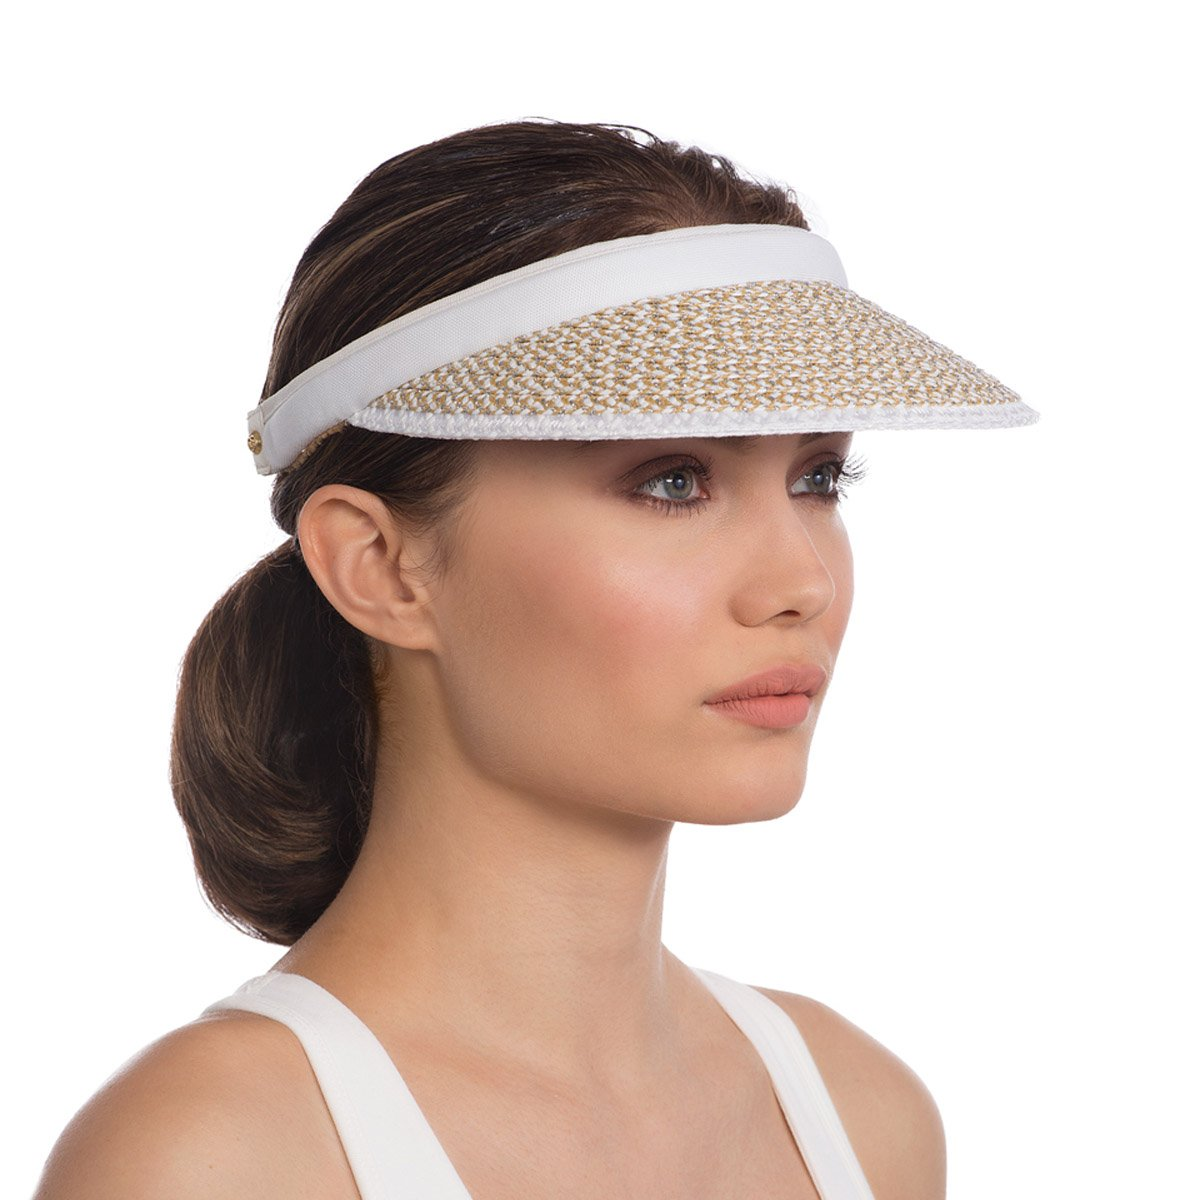 Eric Javits Luxury Fashion Designer Women's Headwear Hat - Bradfield - Frost/White by Eric Javits